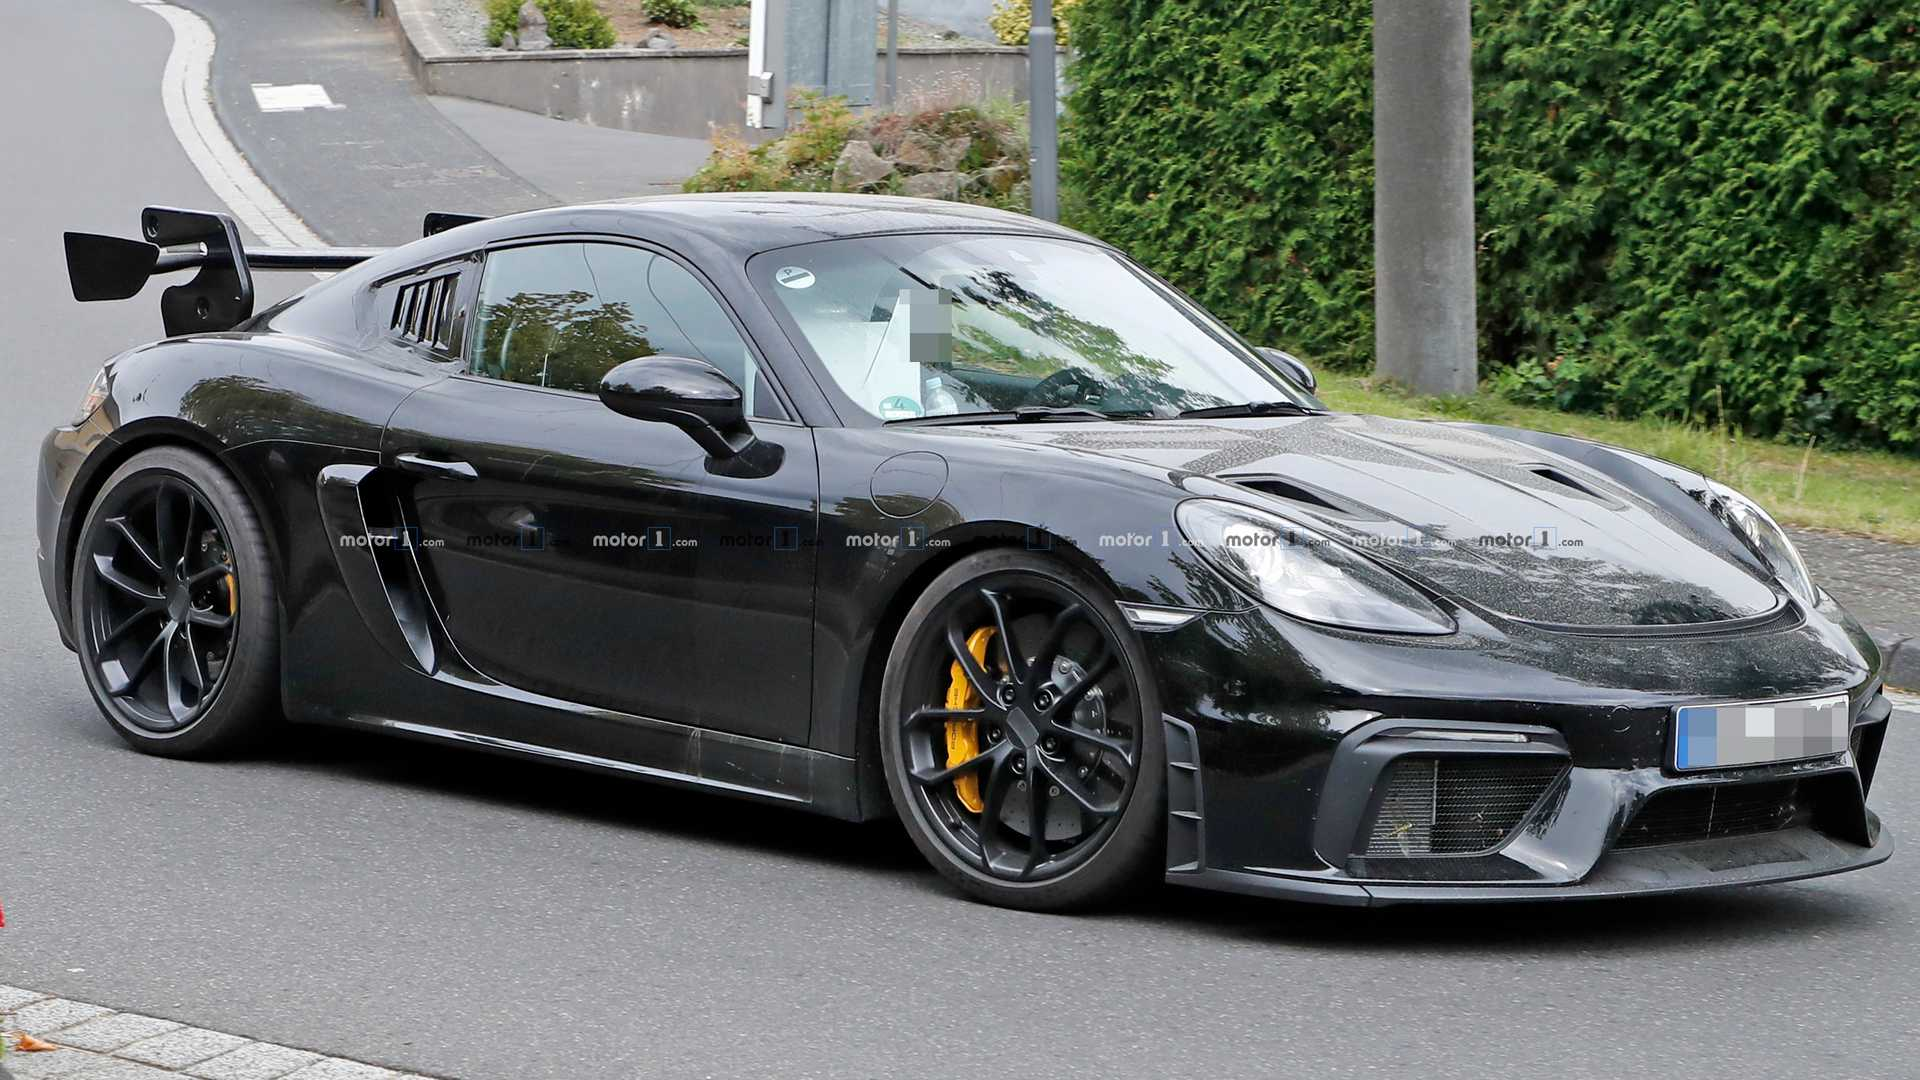 Porsche Gt4 Rs >> Porsche 718 Cayman Gt4 Rs Potentially Spied Testing At The Ring